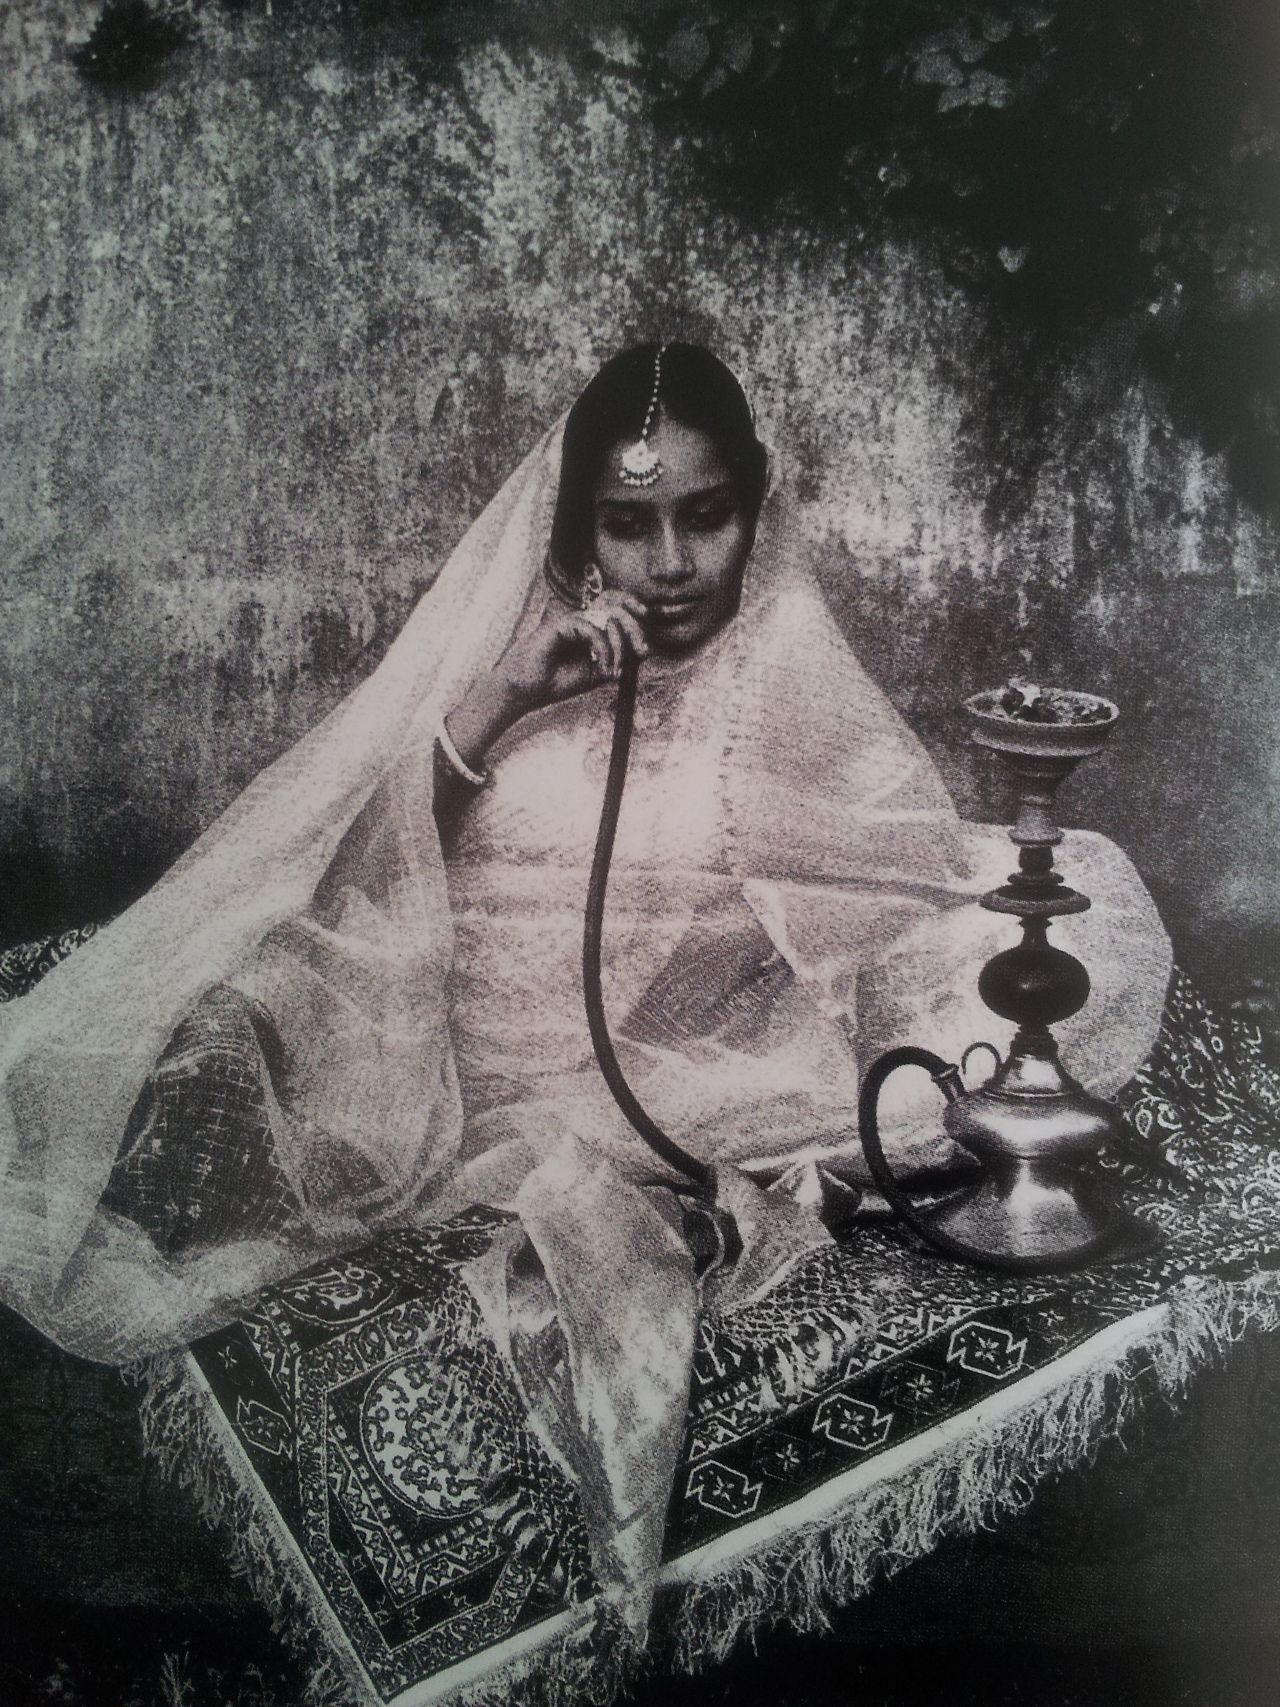 Women smoking the hookah/nargile, a common practice in Mughal India that declined by the late 19th century: 5) Nautch girl, possibly late 19th cent.